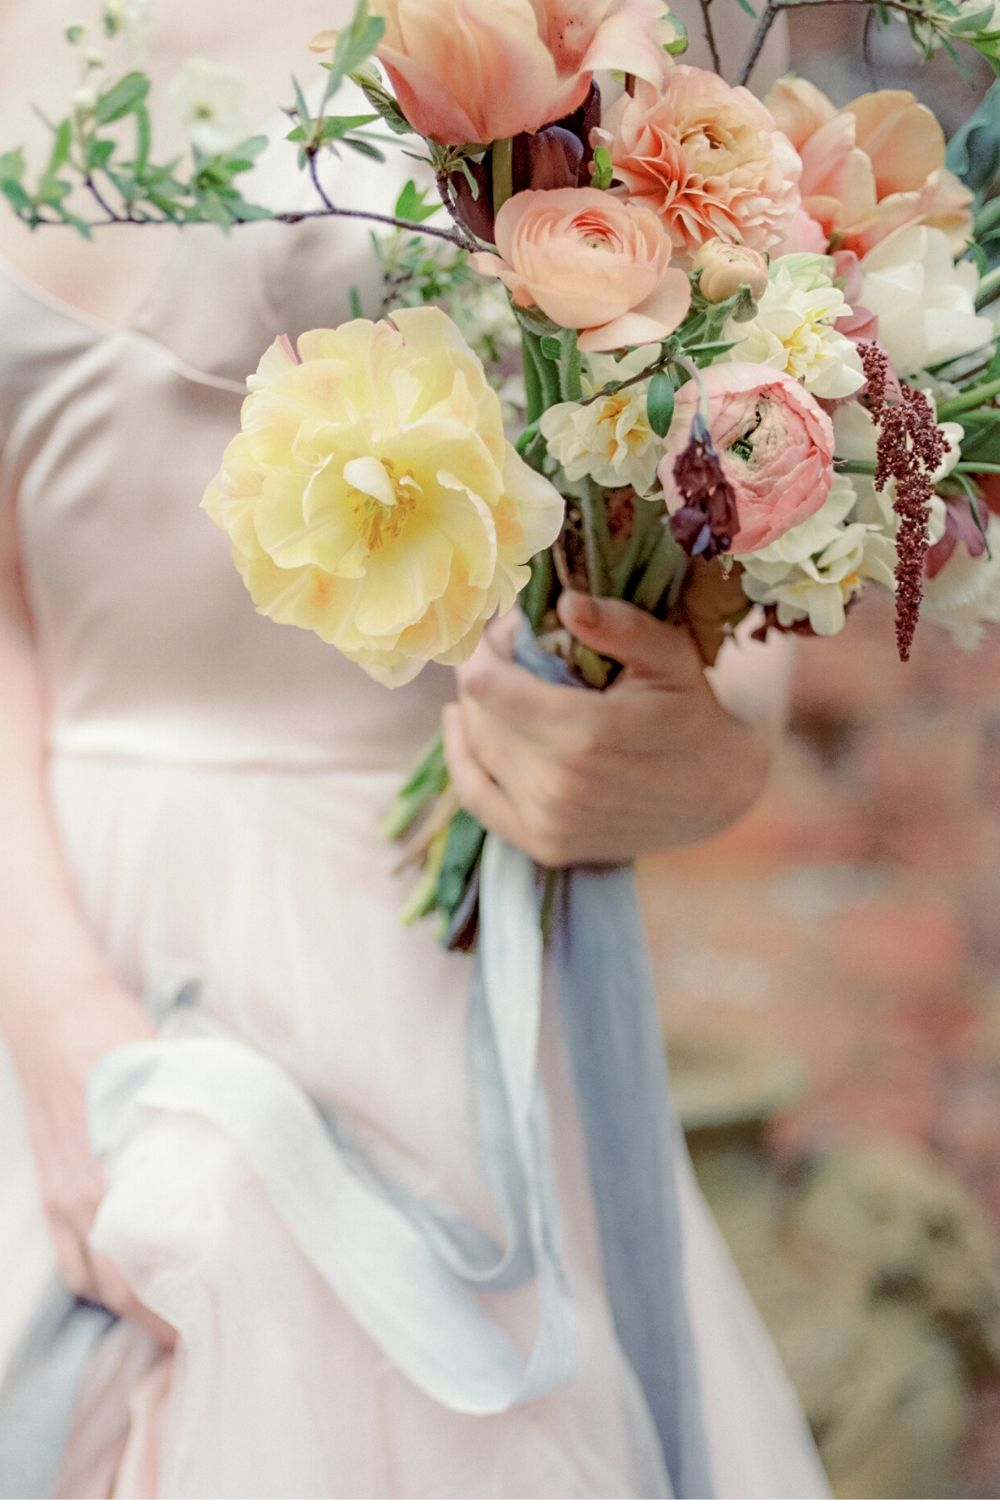 Fine art bridal bouquet with a large yellow rose and smaller blush flowers